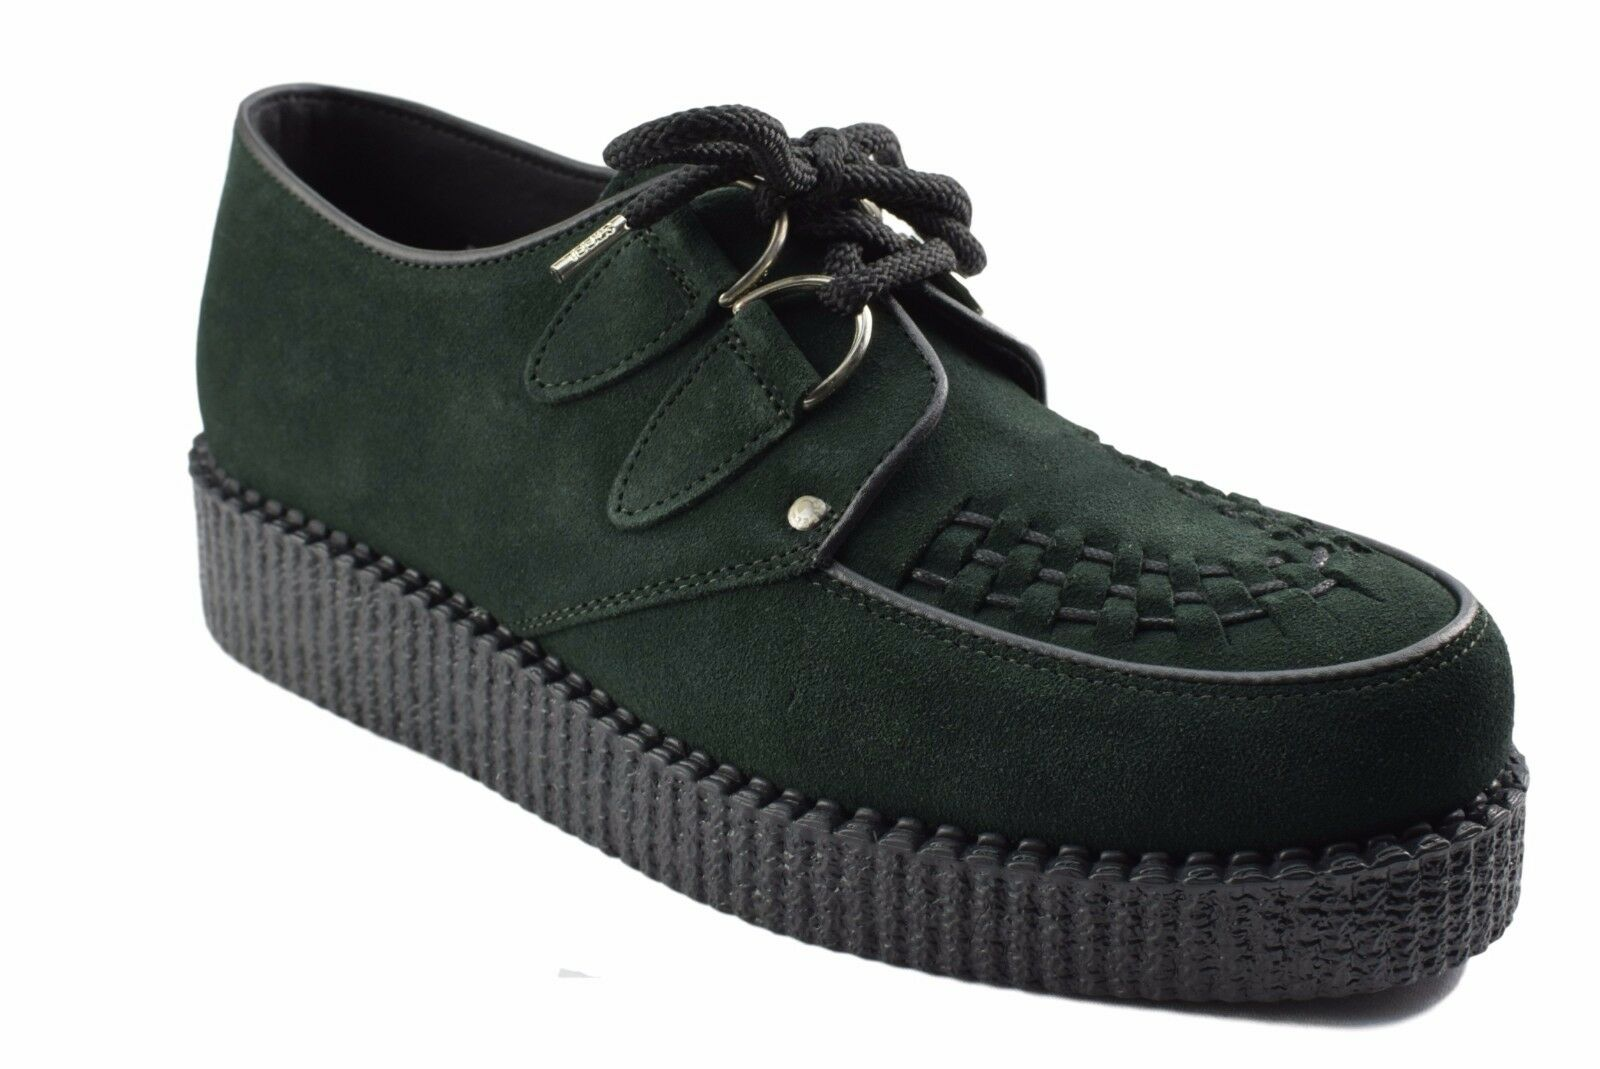 Steel Ground Schuhes Dark Green Suede Creepers Low Sole D Ring Casual Sc400Z7